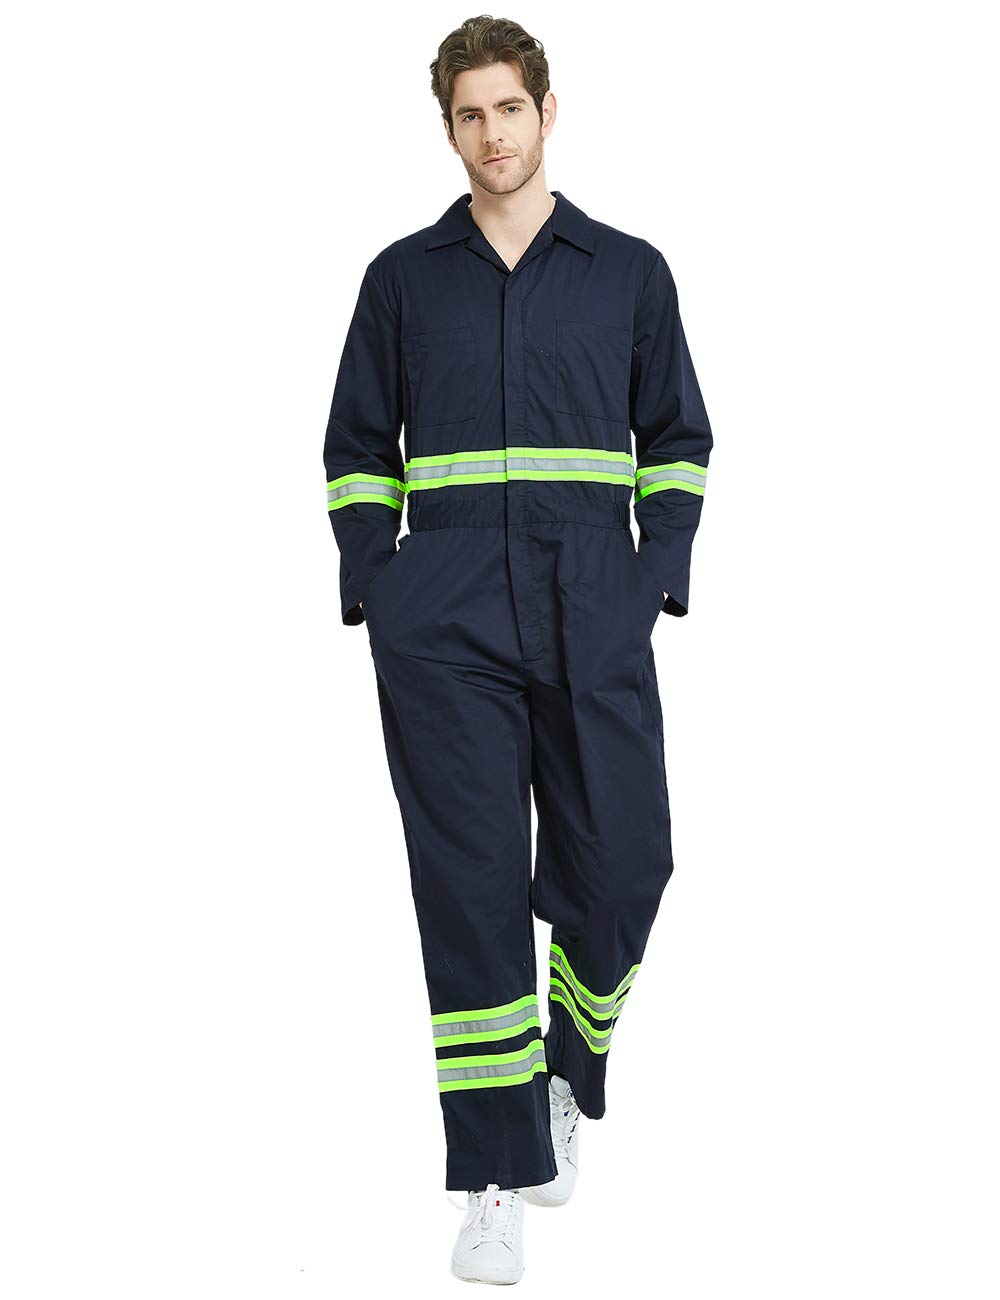 TOPTIE Men's Classic High Visibility Work Coverall with Reflective Trim